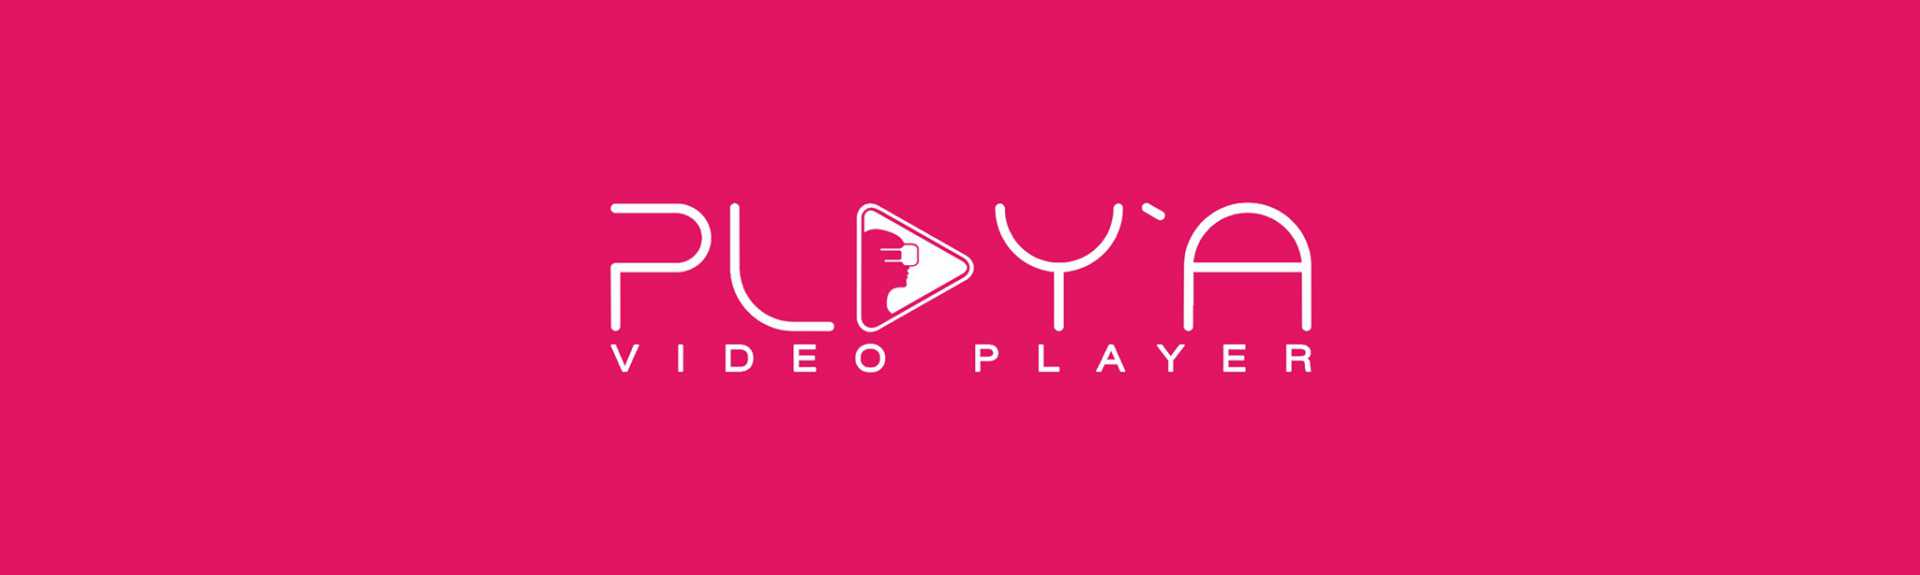 PLAY'A Video Player